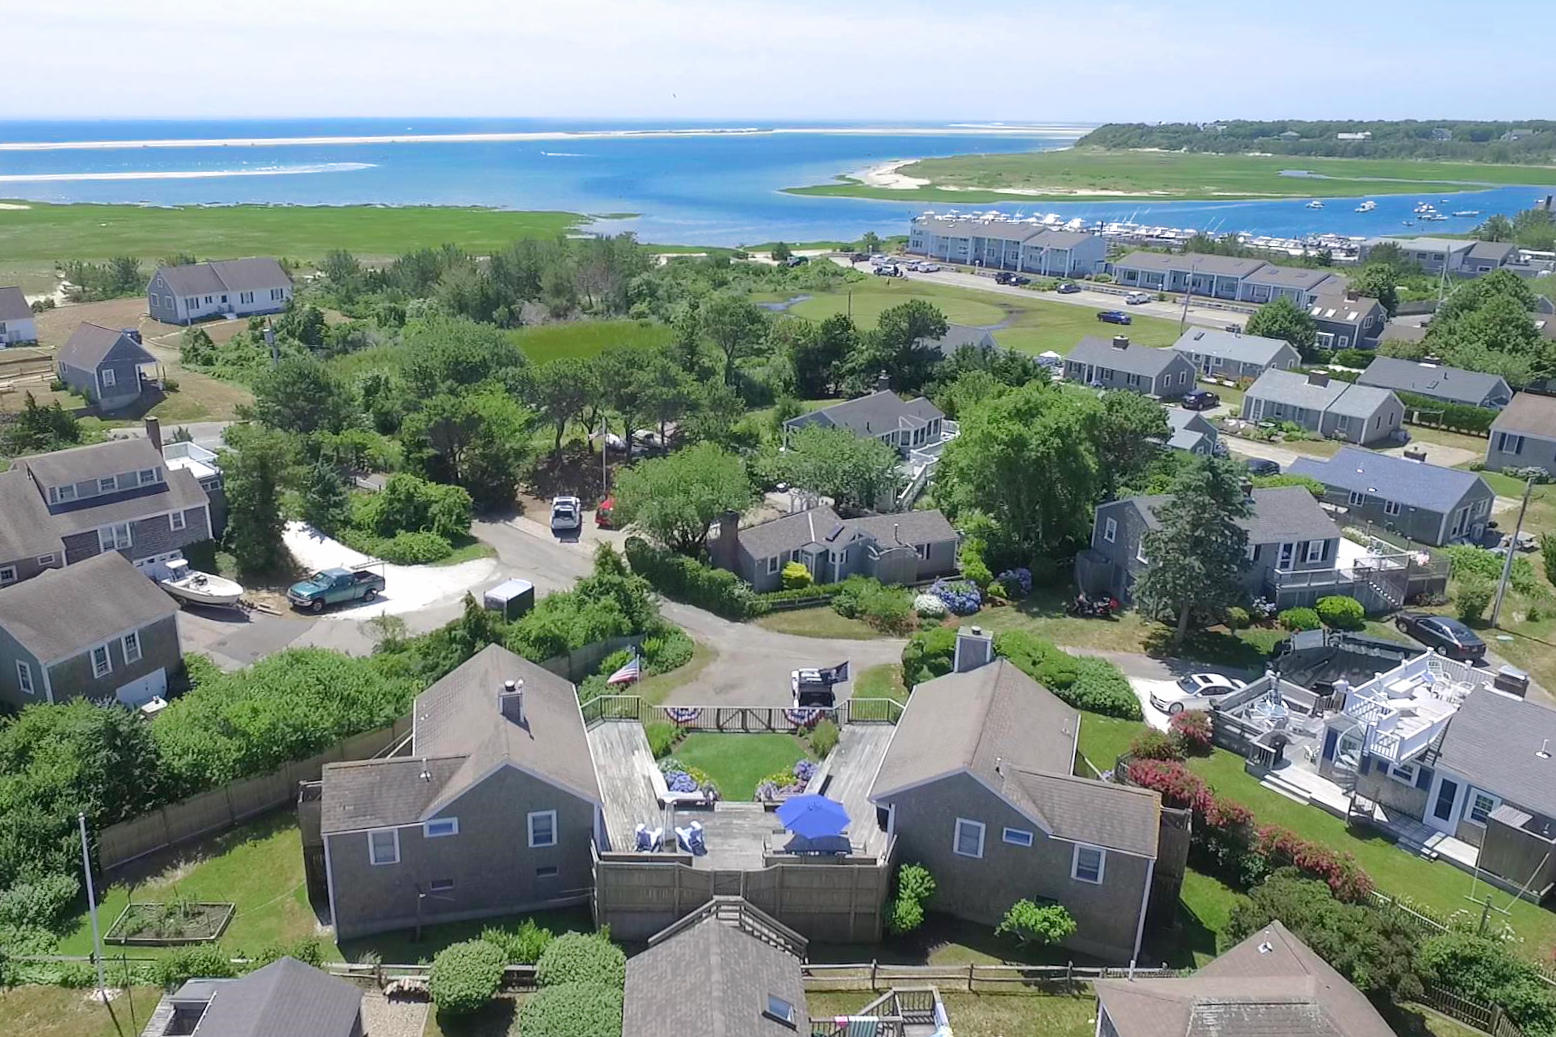 20-22 Clam Shell Drive Chatham, MA 02633